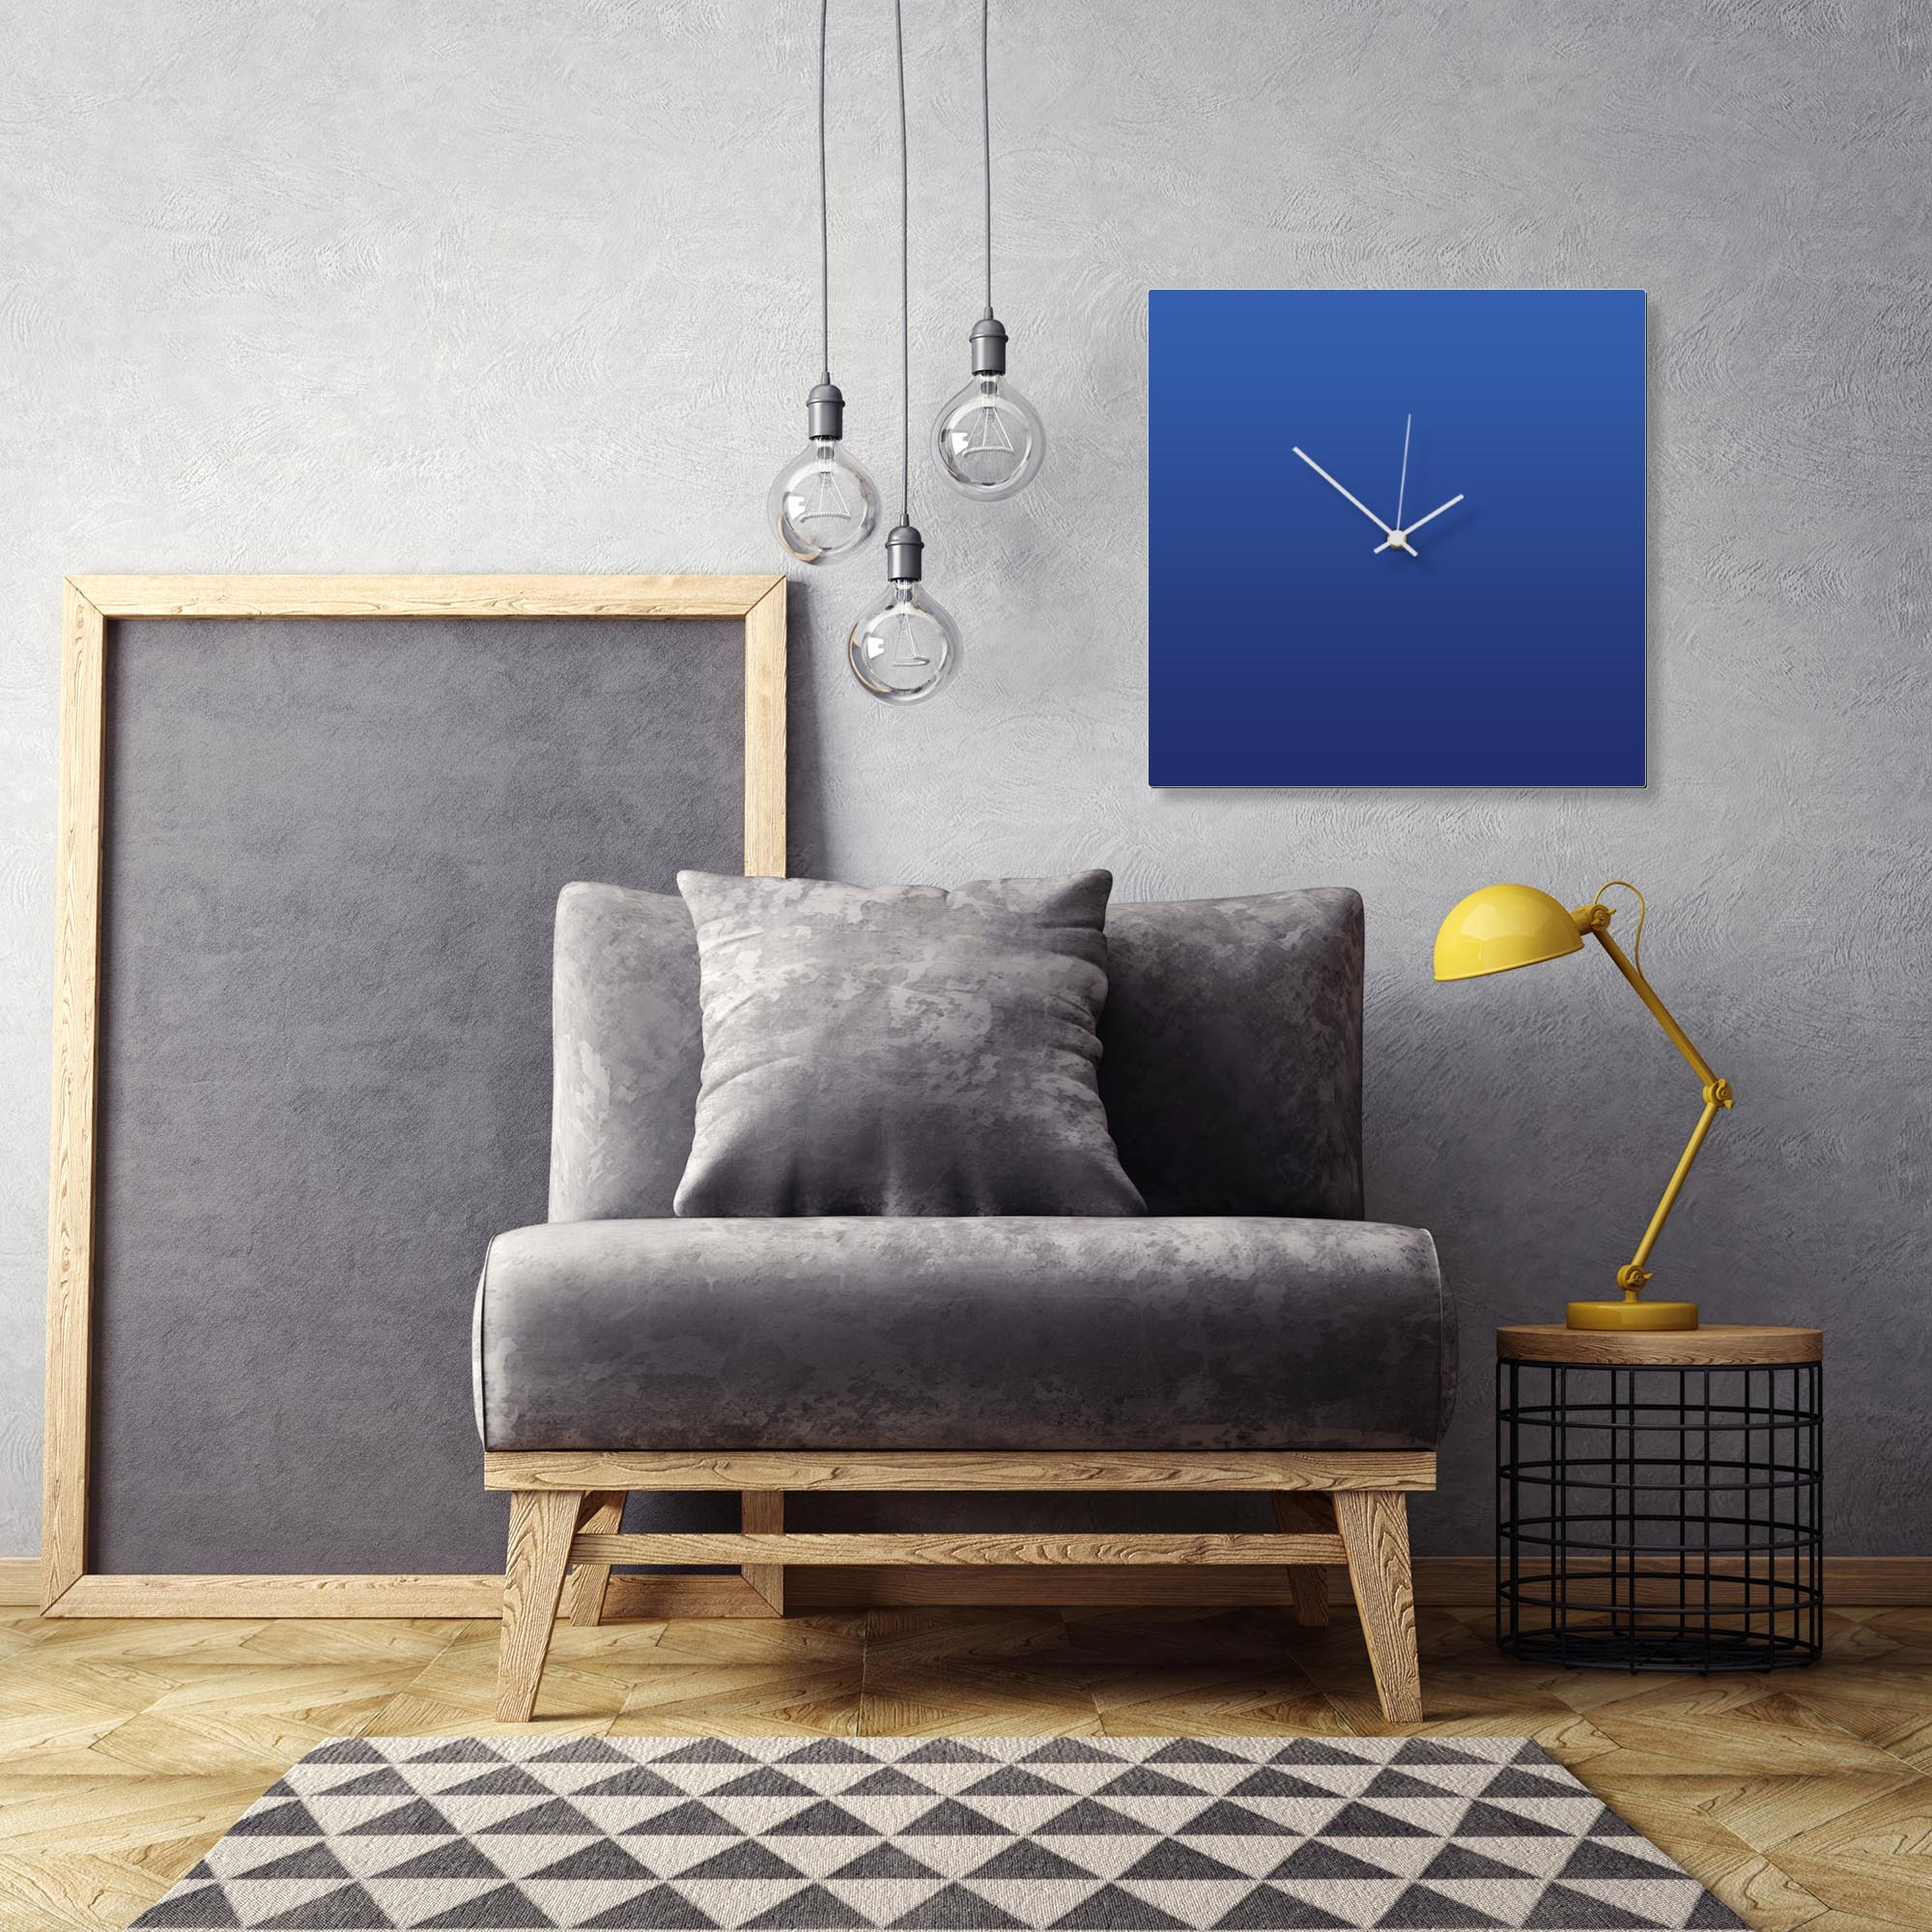 Blueout White Square Clock Large by Adam Schwoeppe Contemporary Clock on Aluminum Polymetal - Alternate View 1